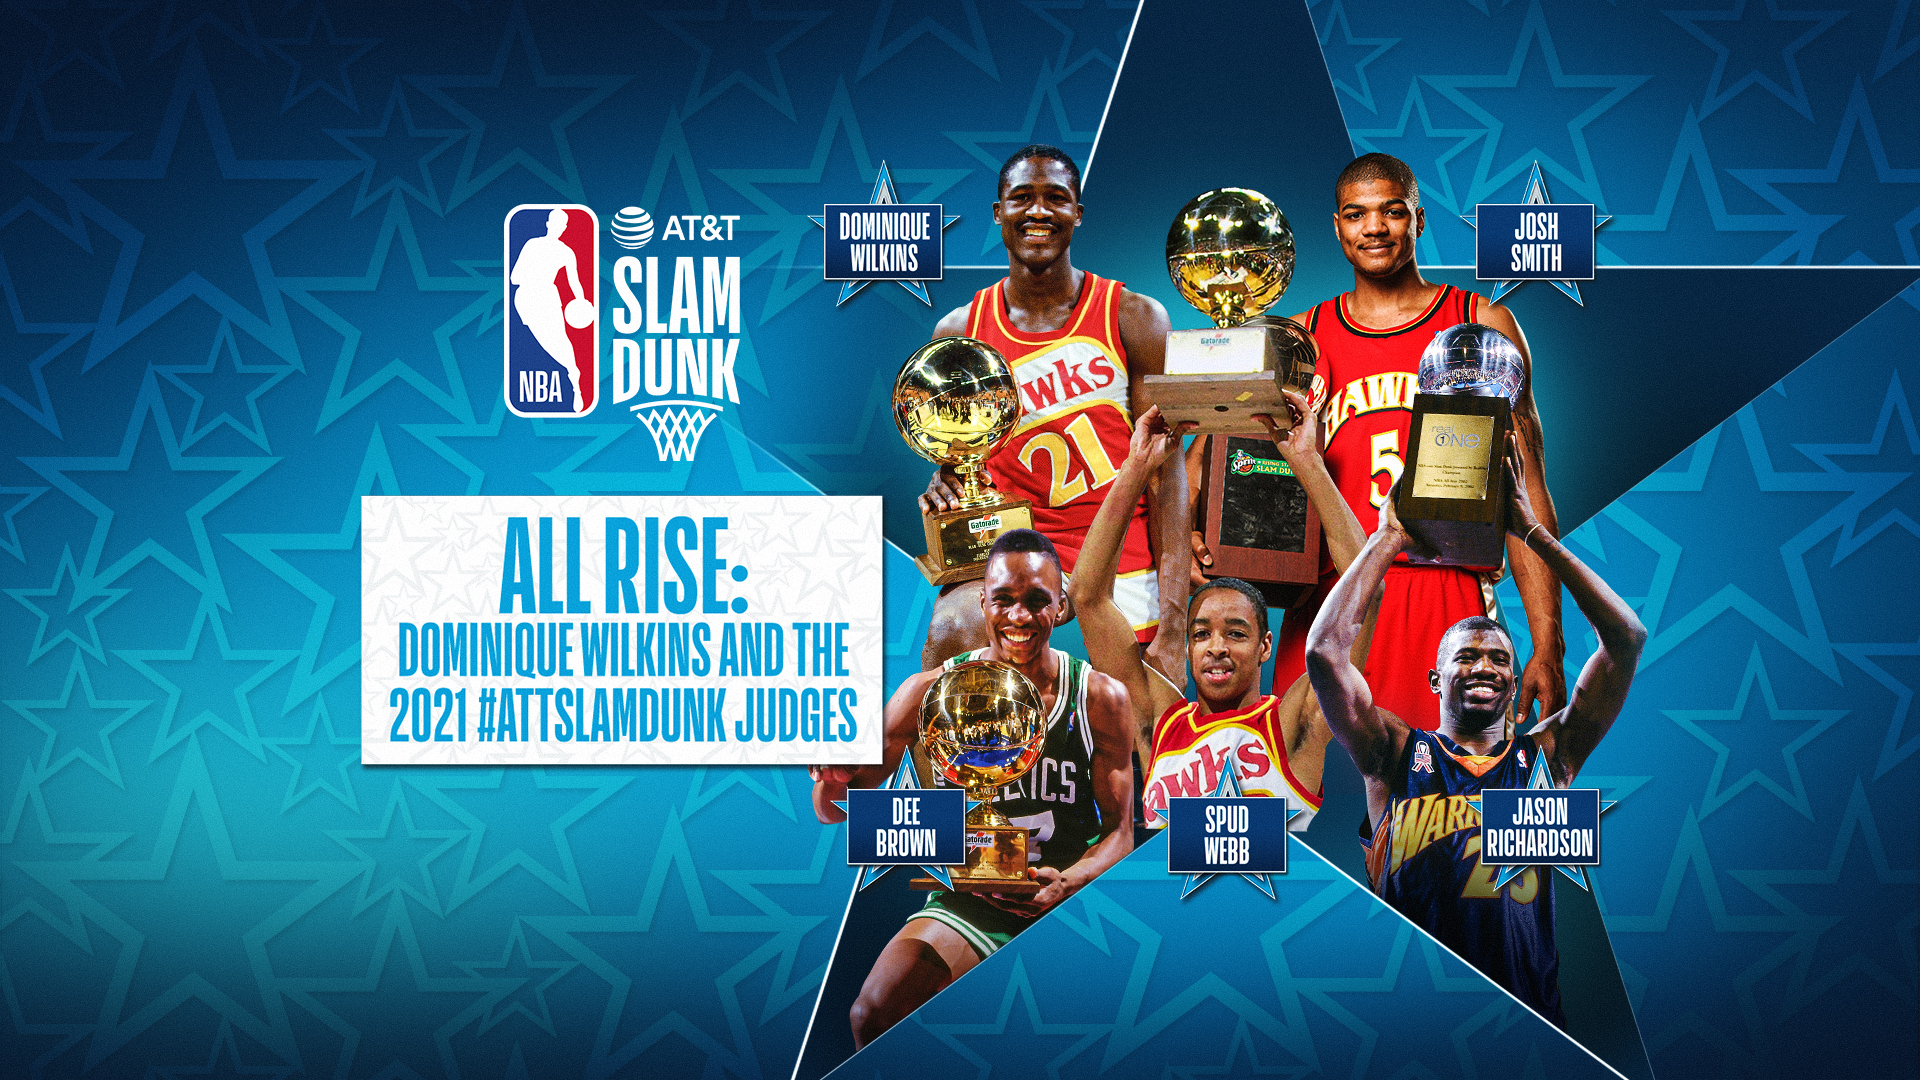 AT&T Slam Dunk judges reminisce, prepare for Sunday